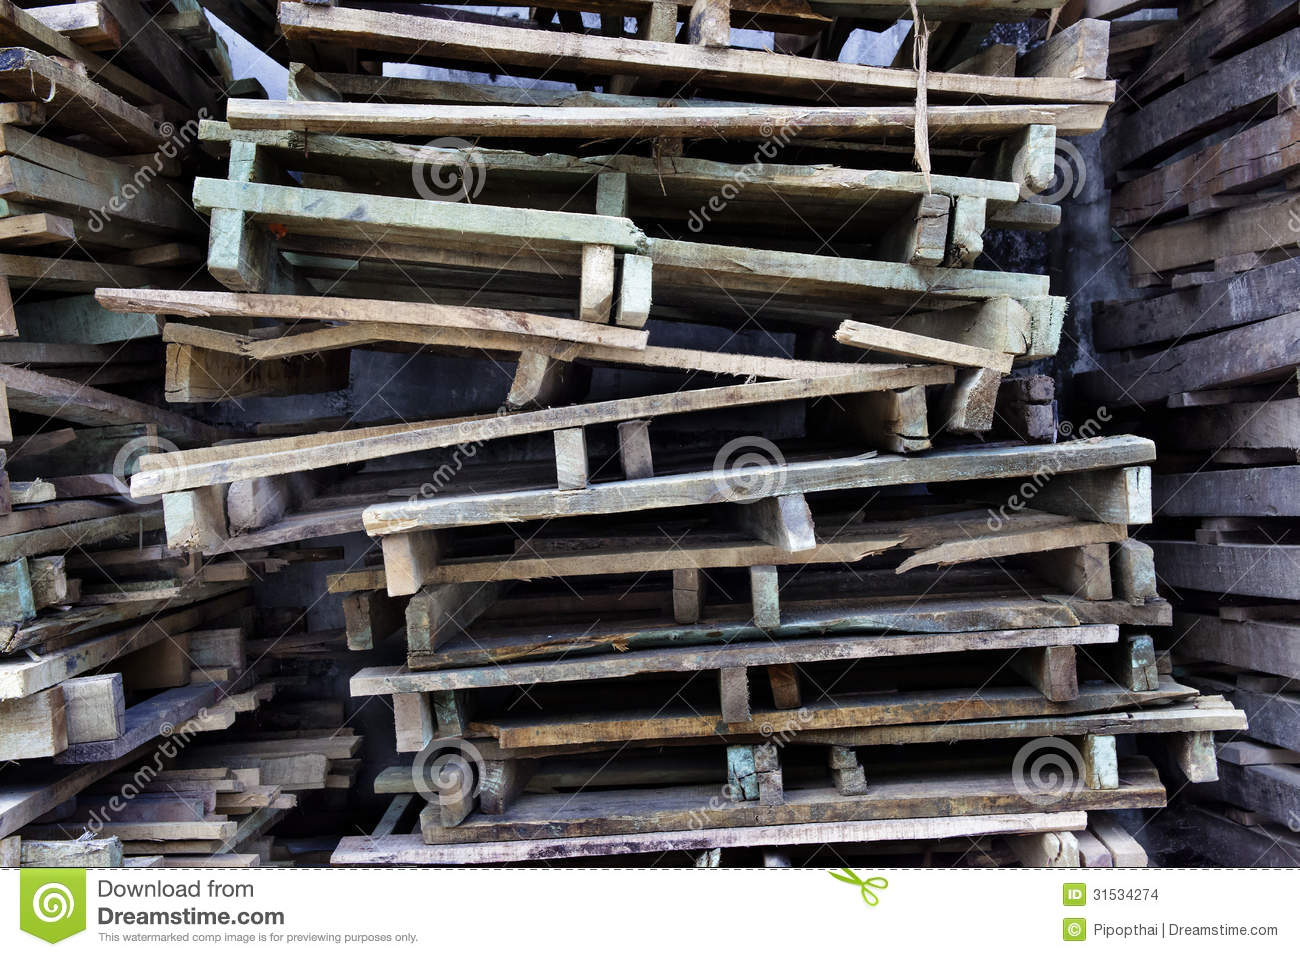 Wood Piling Construction : Pile of wood stock images image